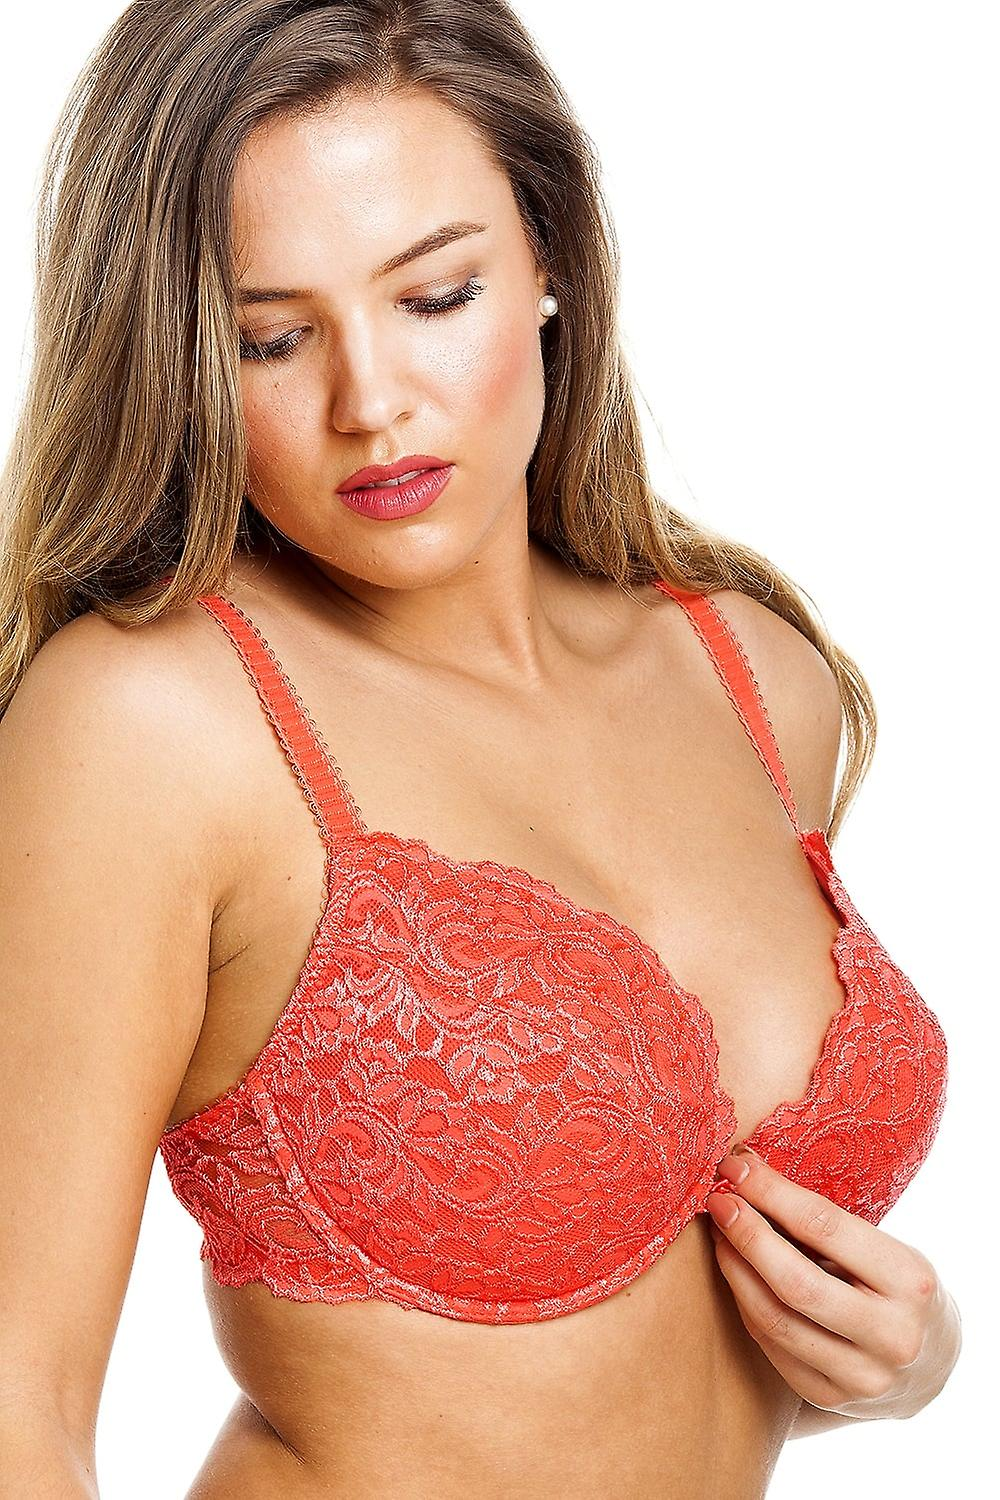 d06973e980338 Camille Camille Womens Ladies Tangerine Push Up Plunge Padded Underwired  Bra Size 34A-40G